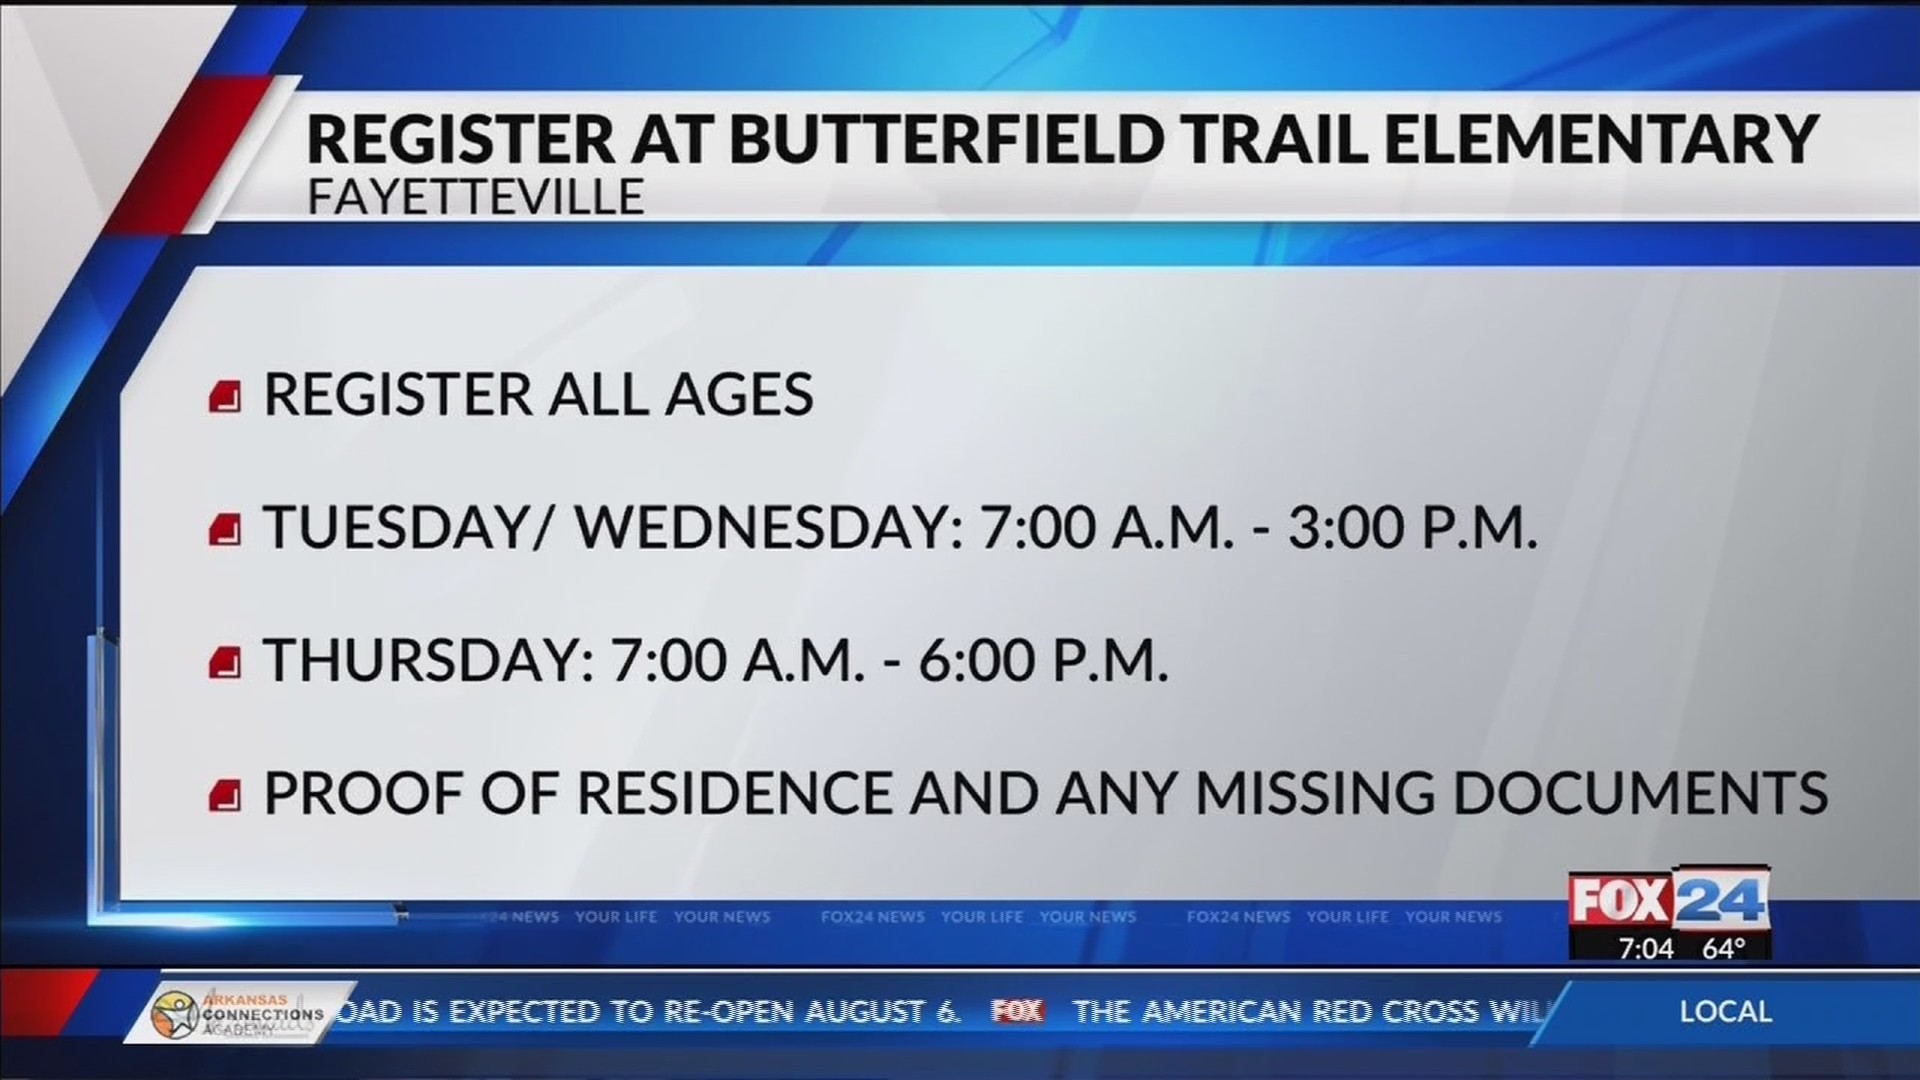 Register_at_Butterfield_Trail_Elementary_0_20180731124344